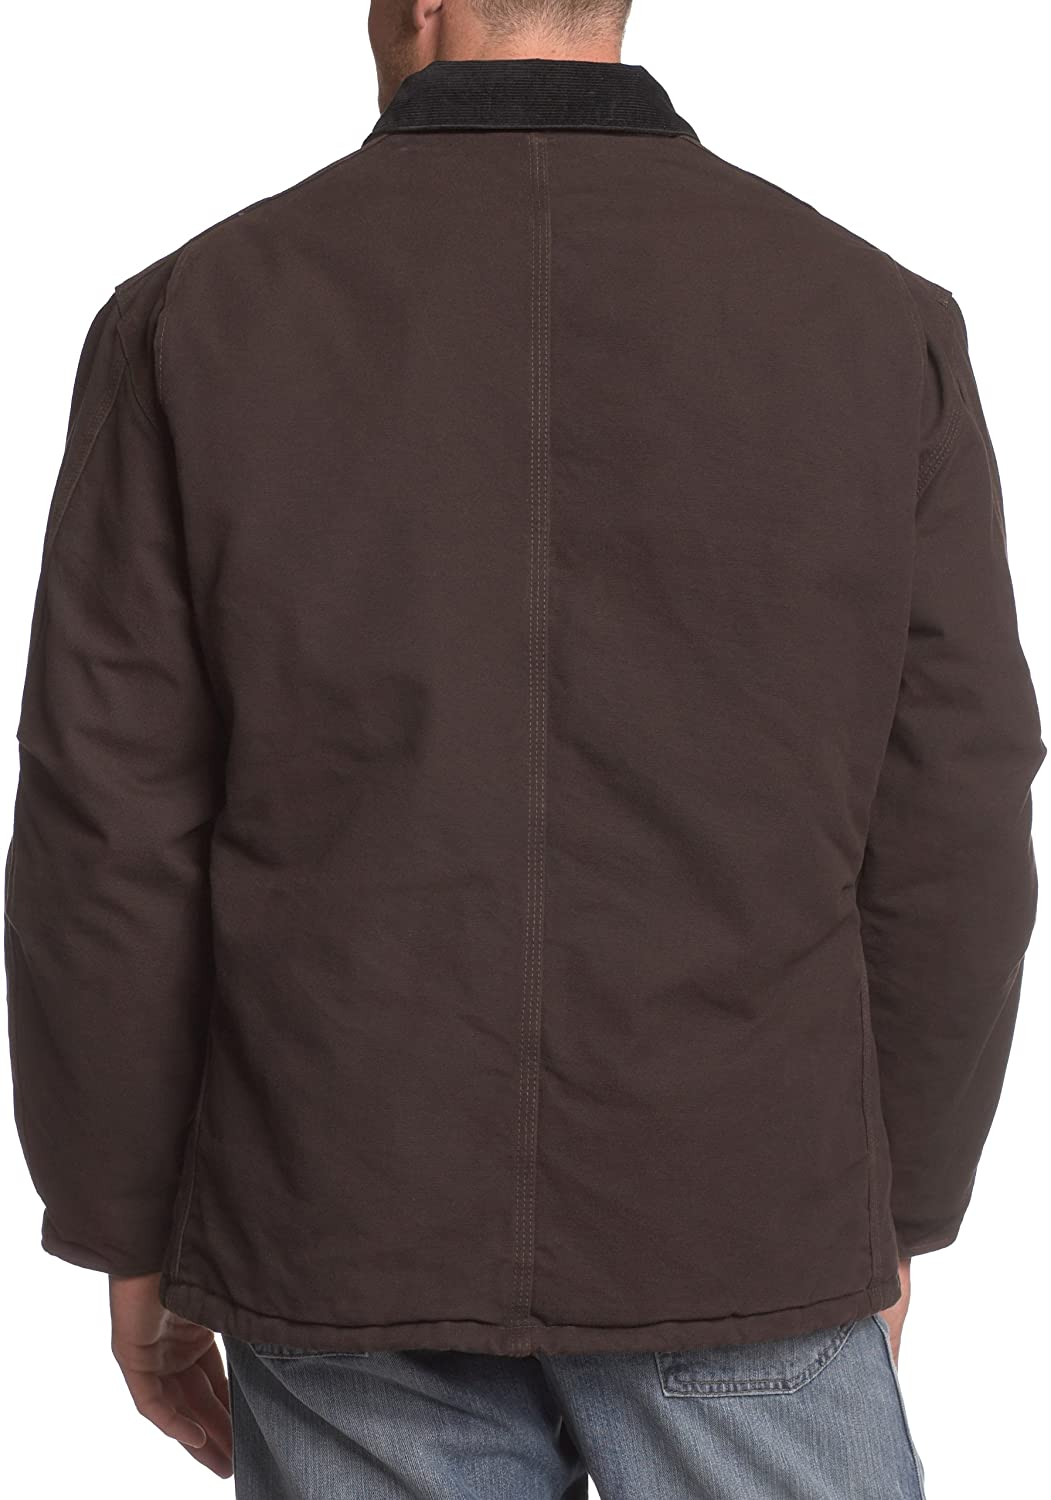 Carhartt Mens Big & Tall Arctic-Quilt Lined Sandstone Duck Traditional Coat C26,Dark Brown,XXXX-Large Tall